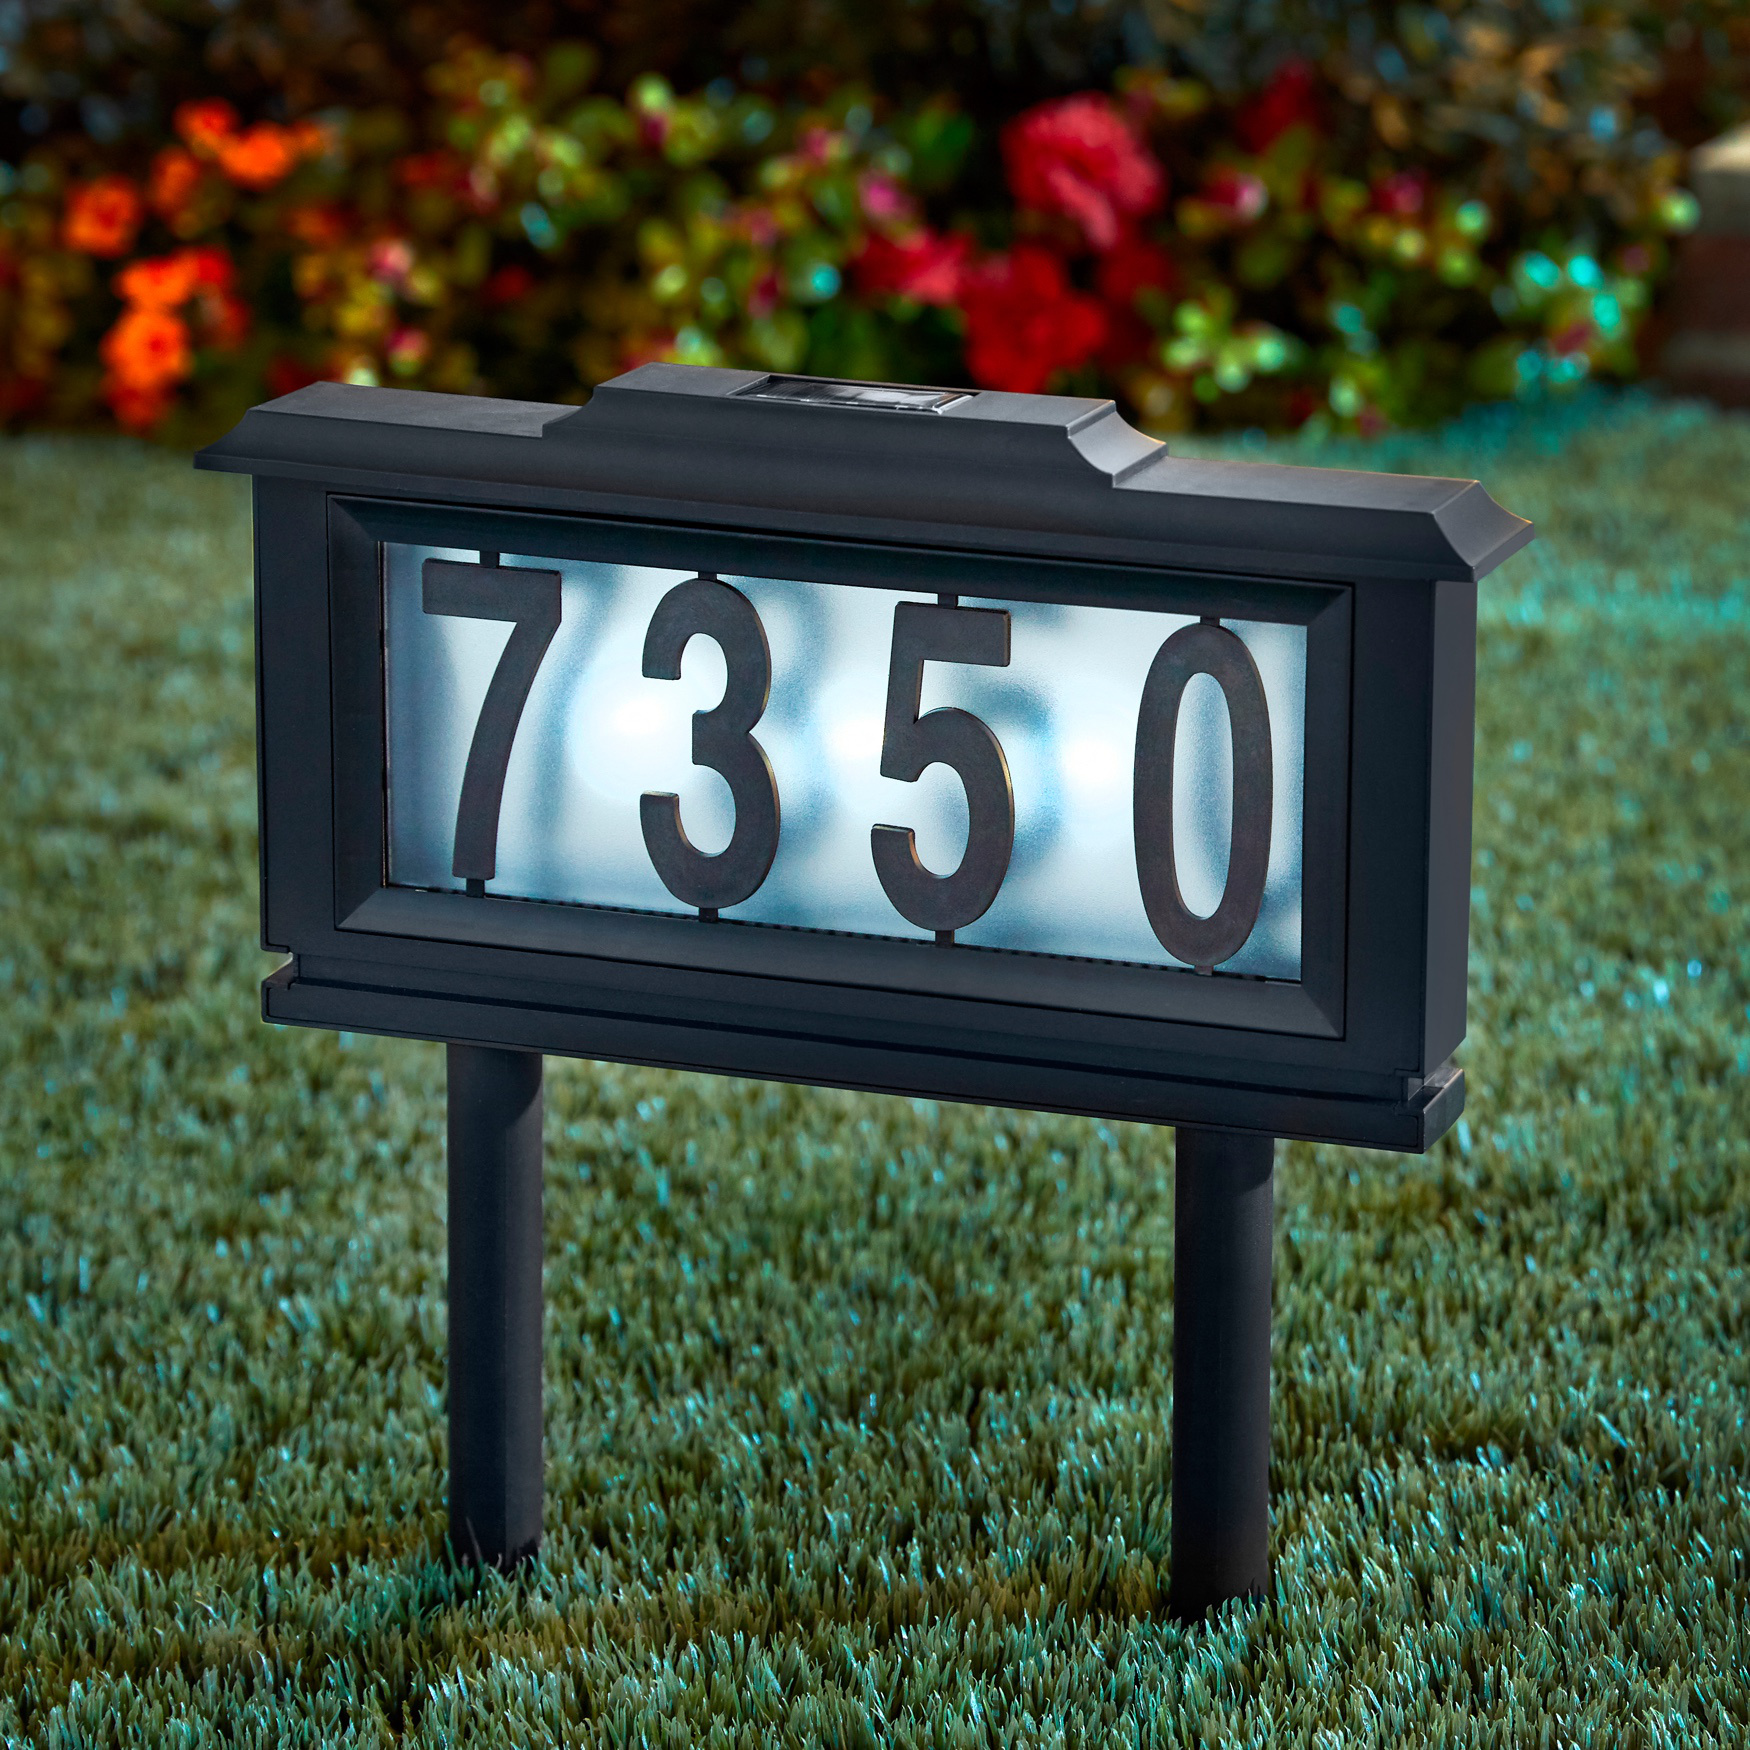 Solar Light House Number Plaque Black